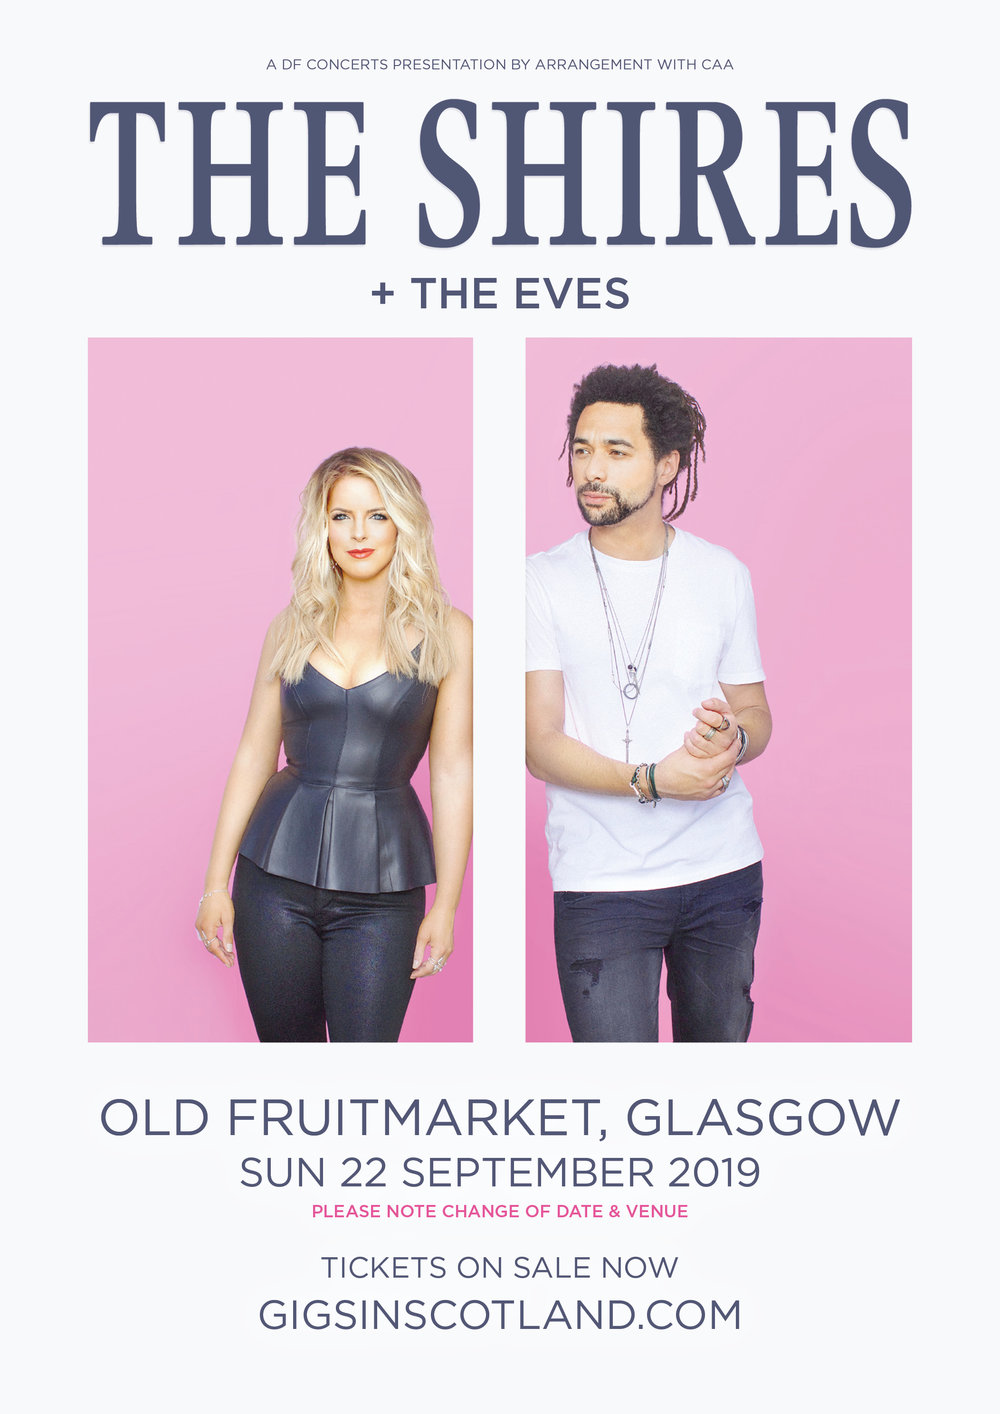 TheShires_Fruitmarket_a3.jpg